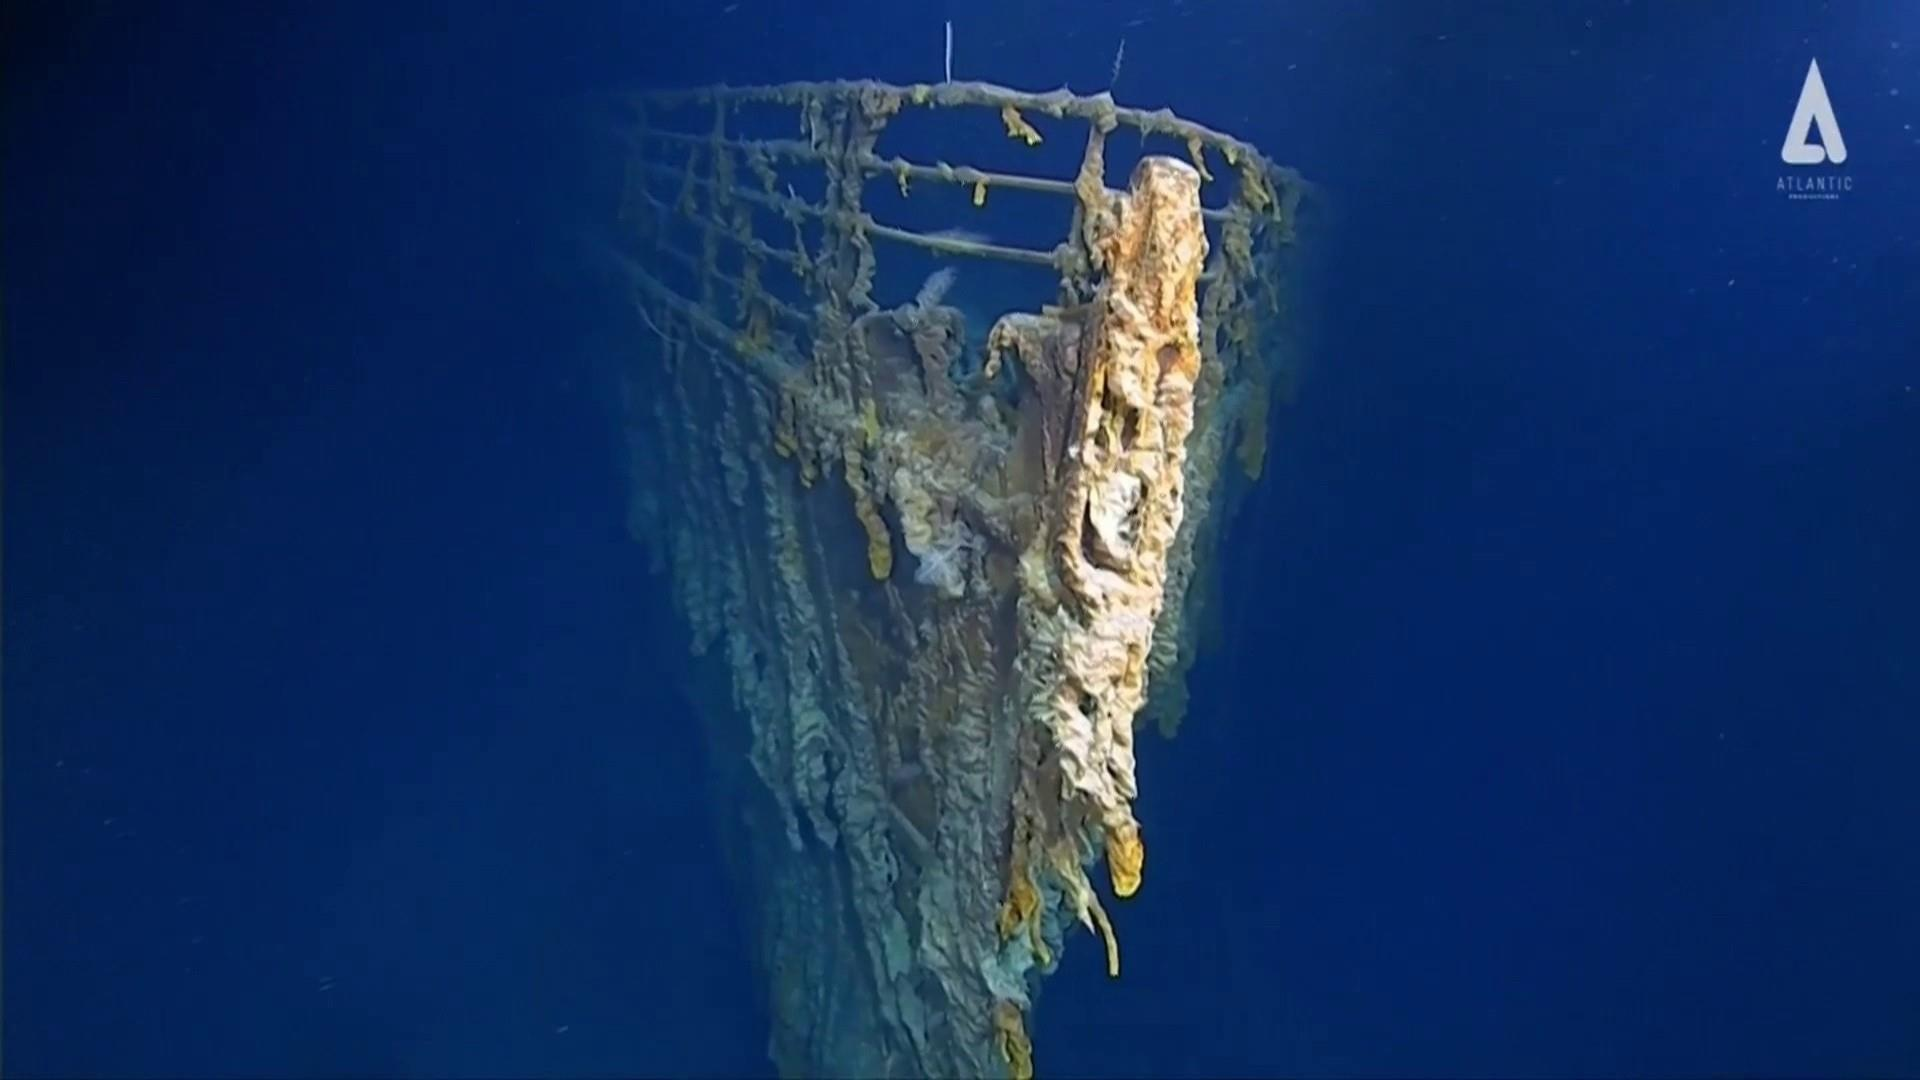 New Titanic photos reveal sunken ship wrecked by ocean